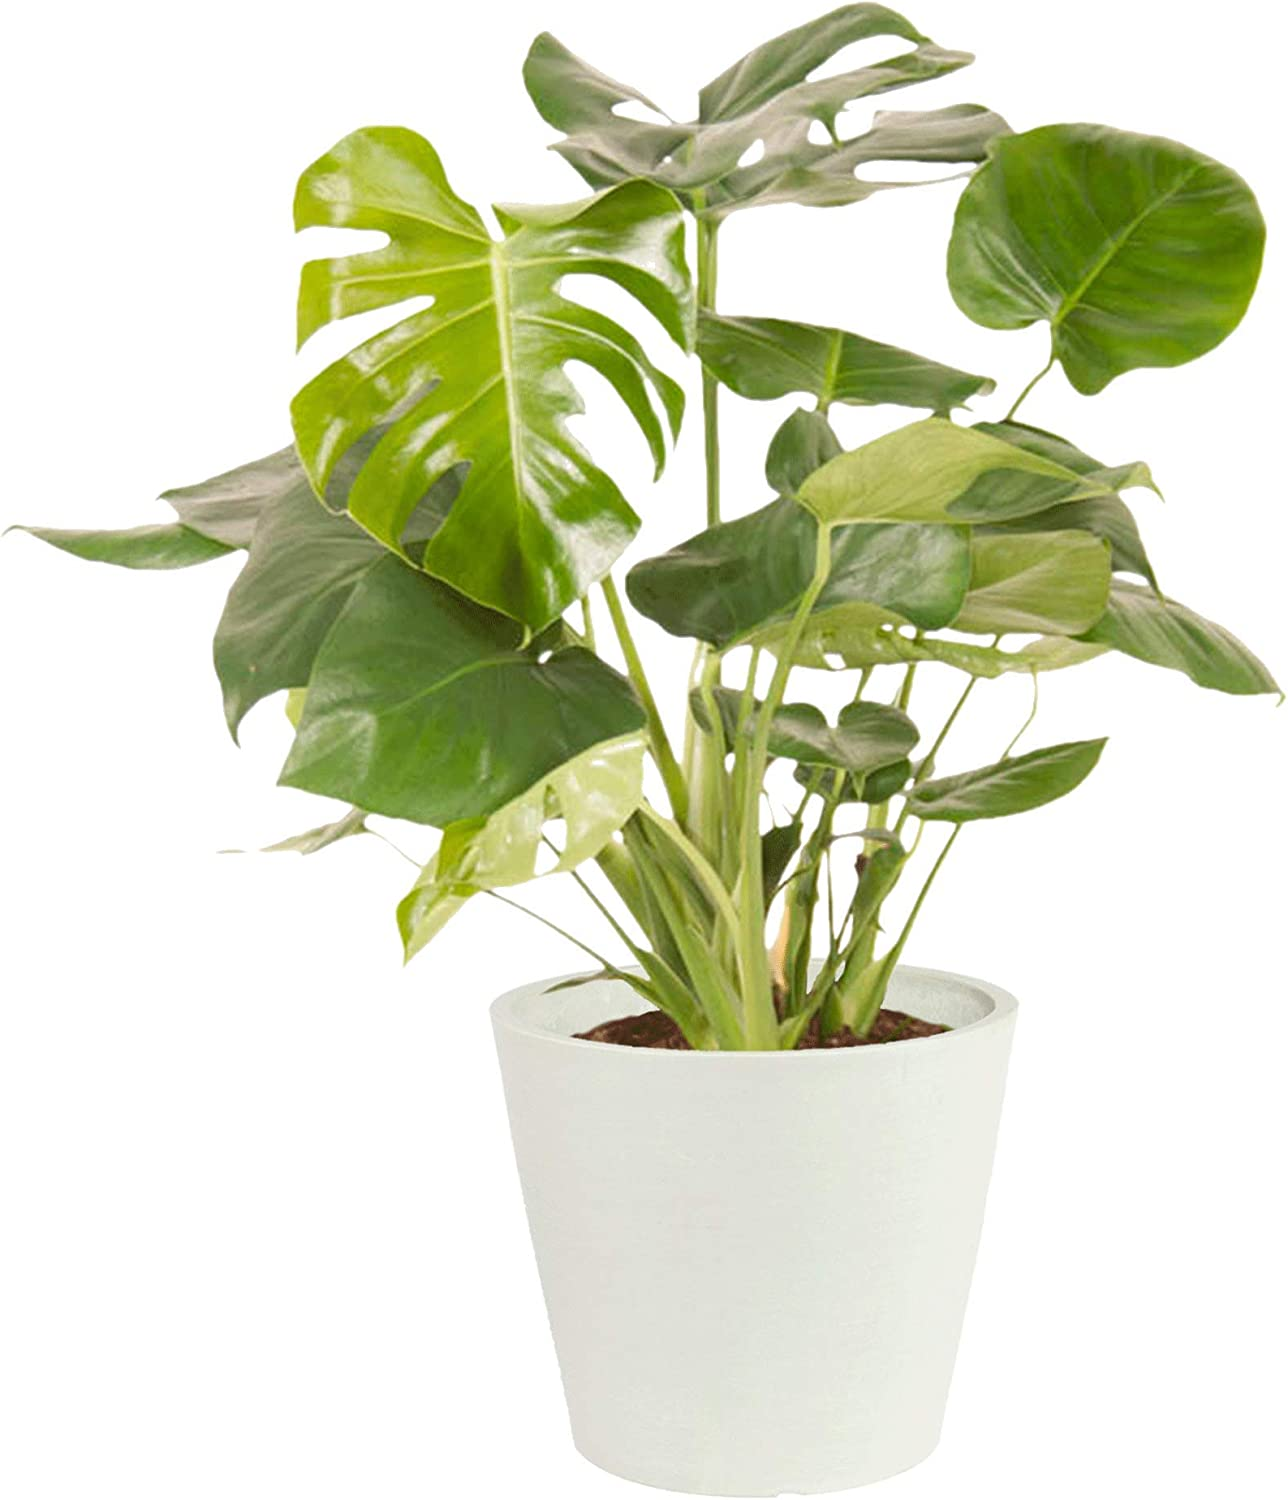 Swiss Cheese Plant Philodendron Monstera Plant Indoor Potted Plants Large House Plants Height 70 Cm Pot 24 Cm Delivered In A White Ecopots Pot Amazon Co Uk Garden Outdoors